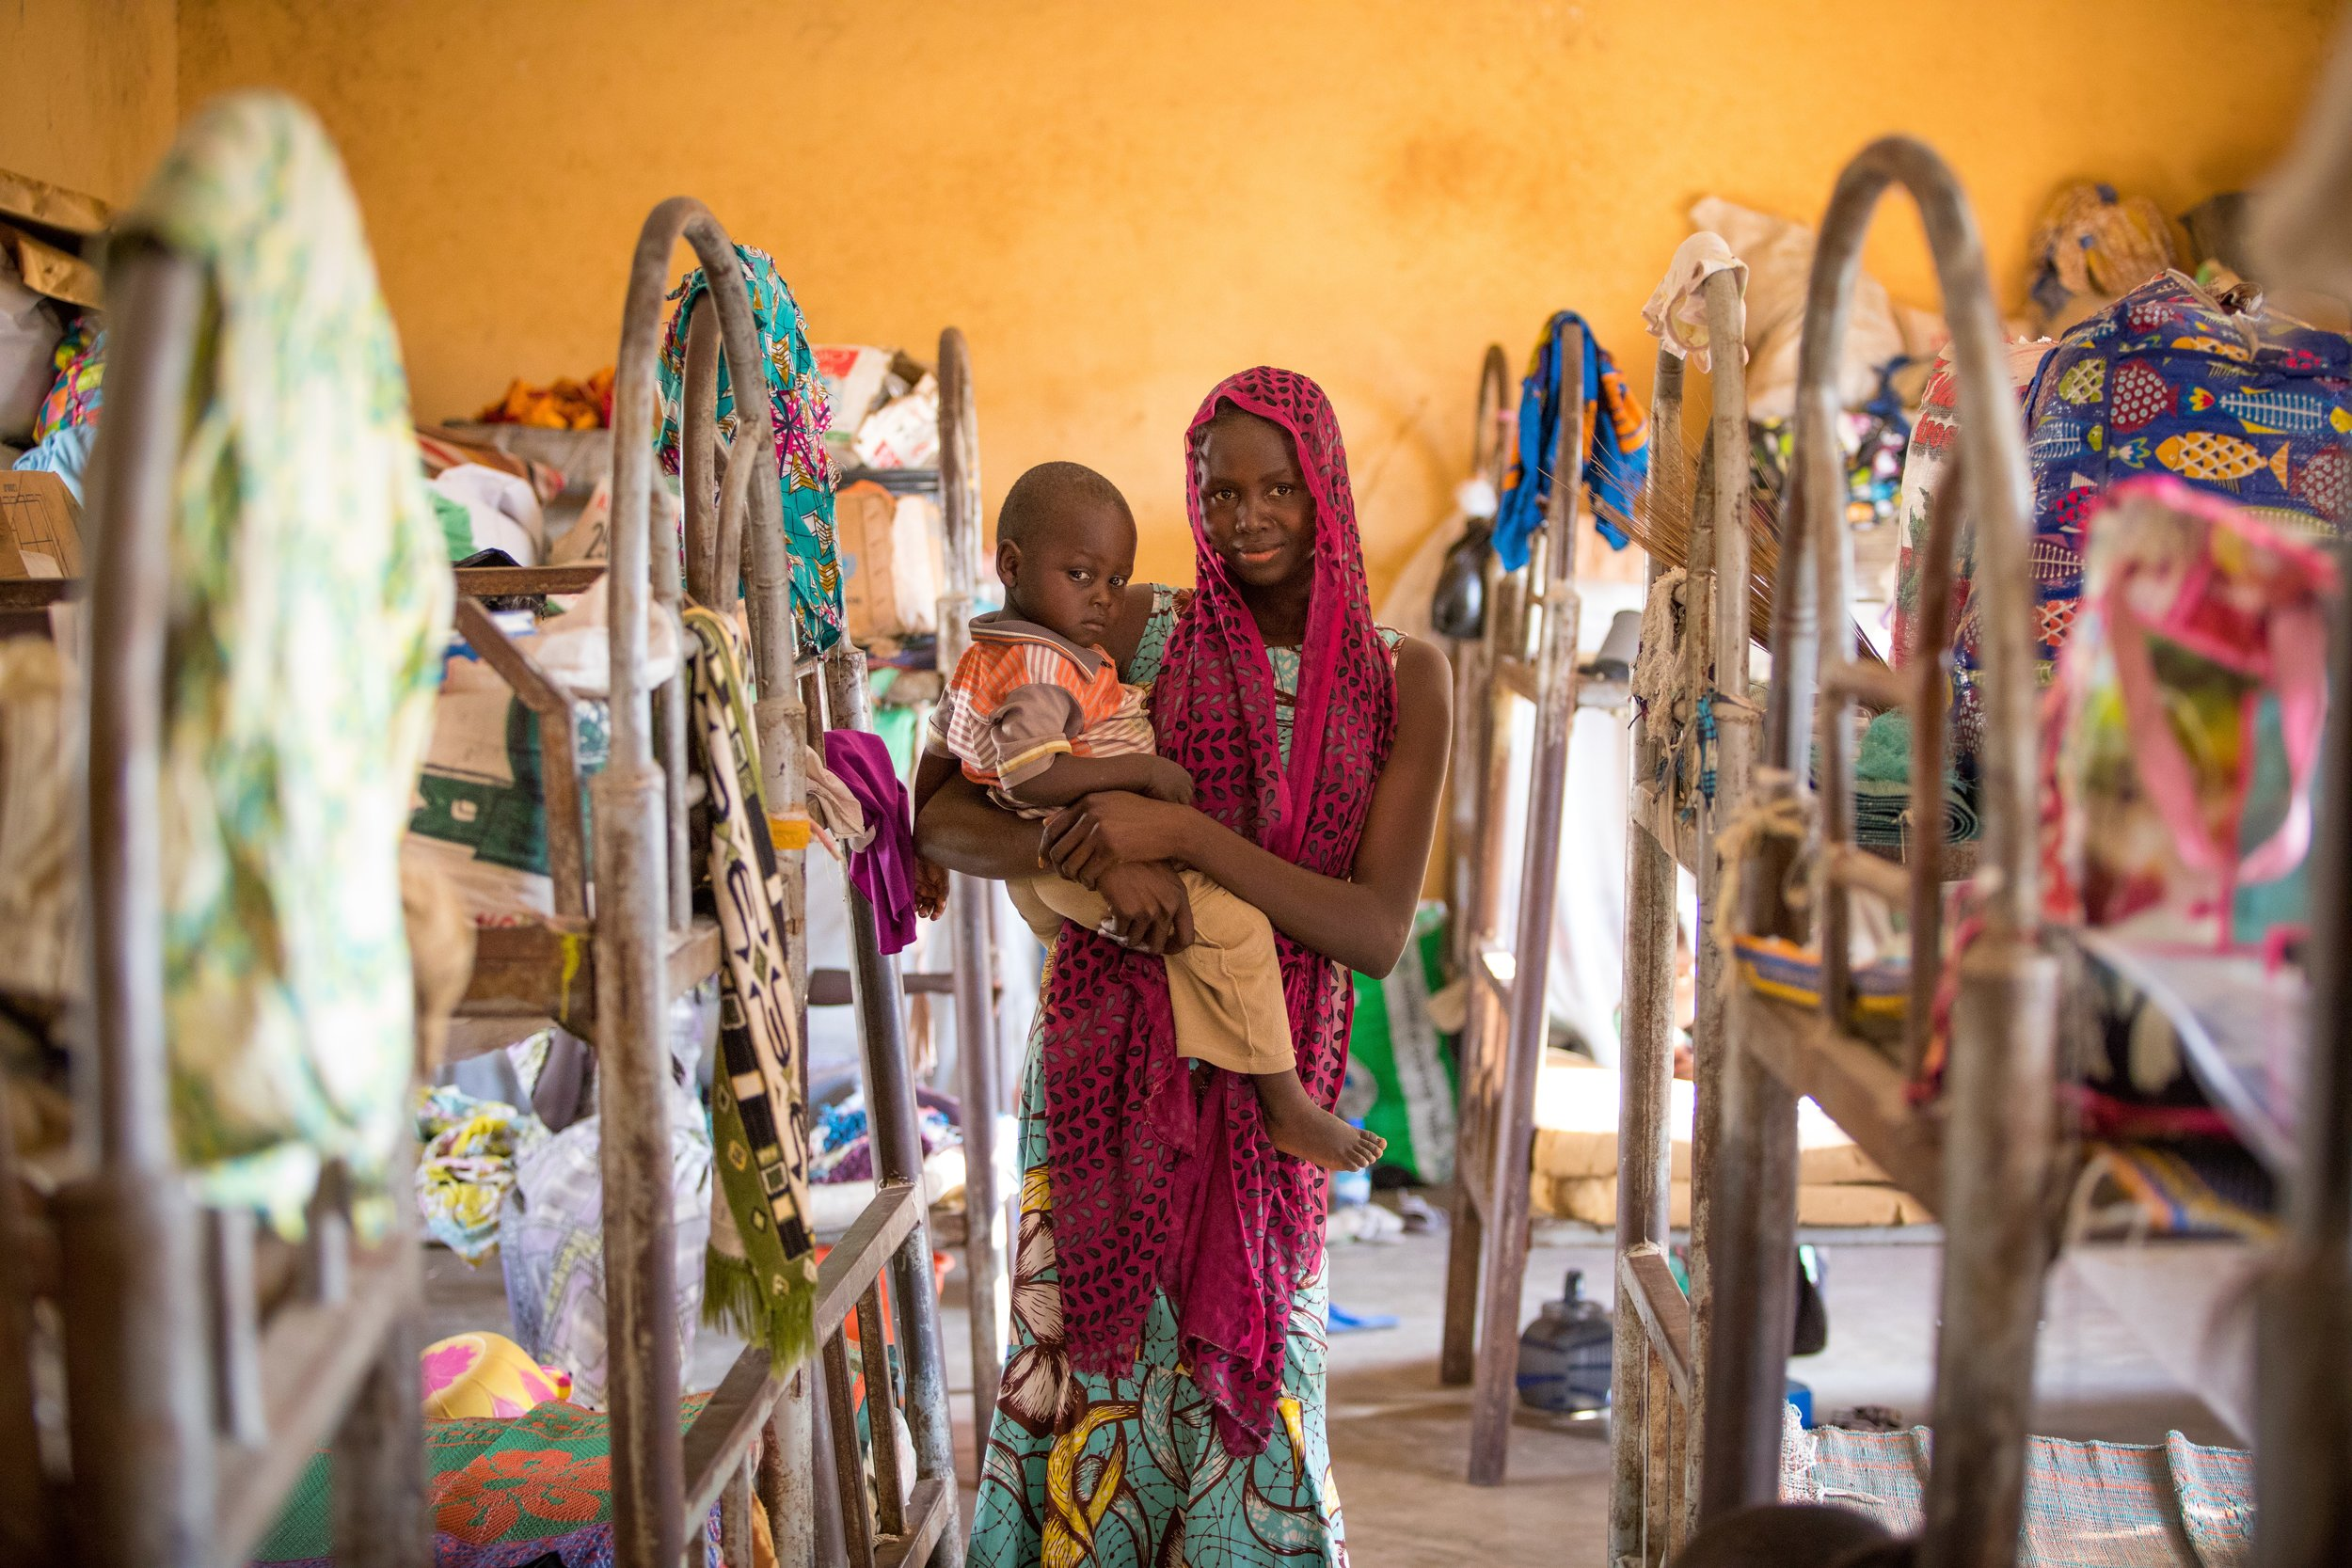 Naomi and her son live in a camp for displaced people in Yola, Nigeria